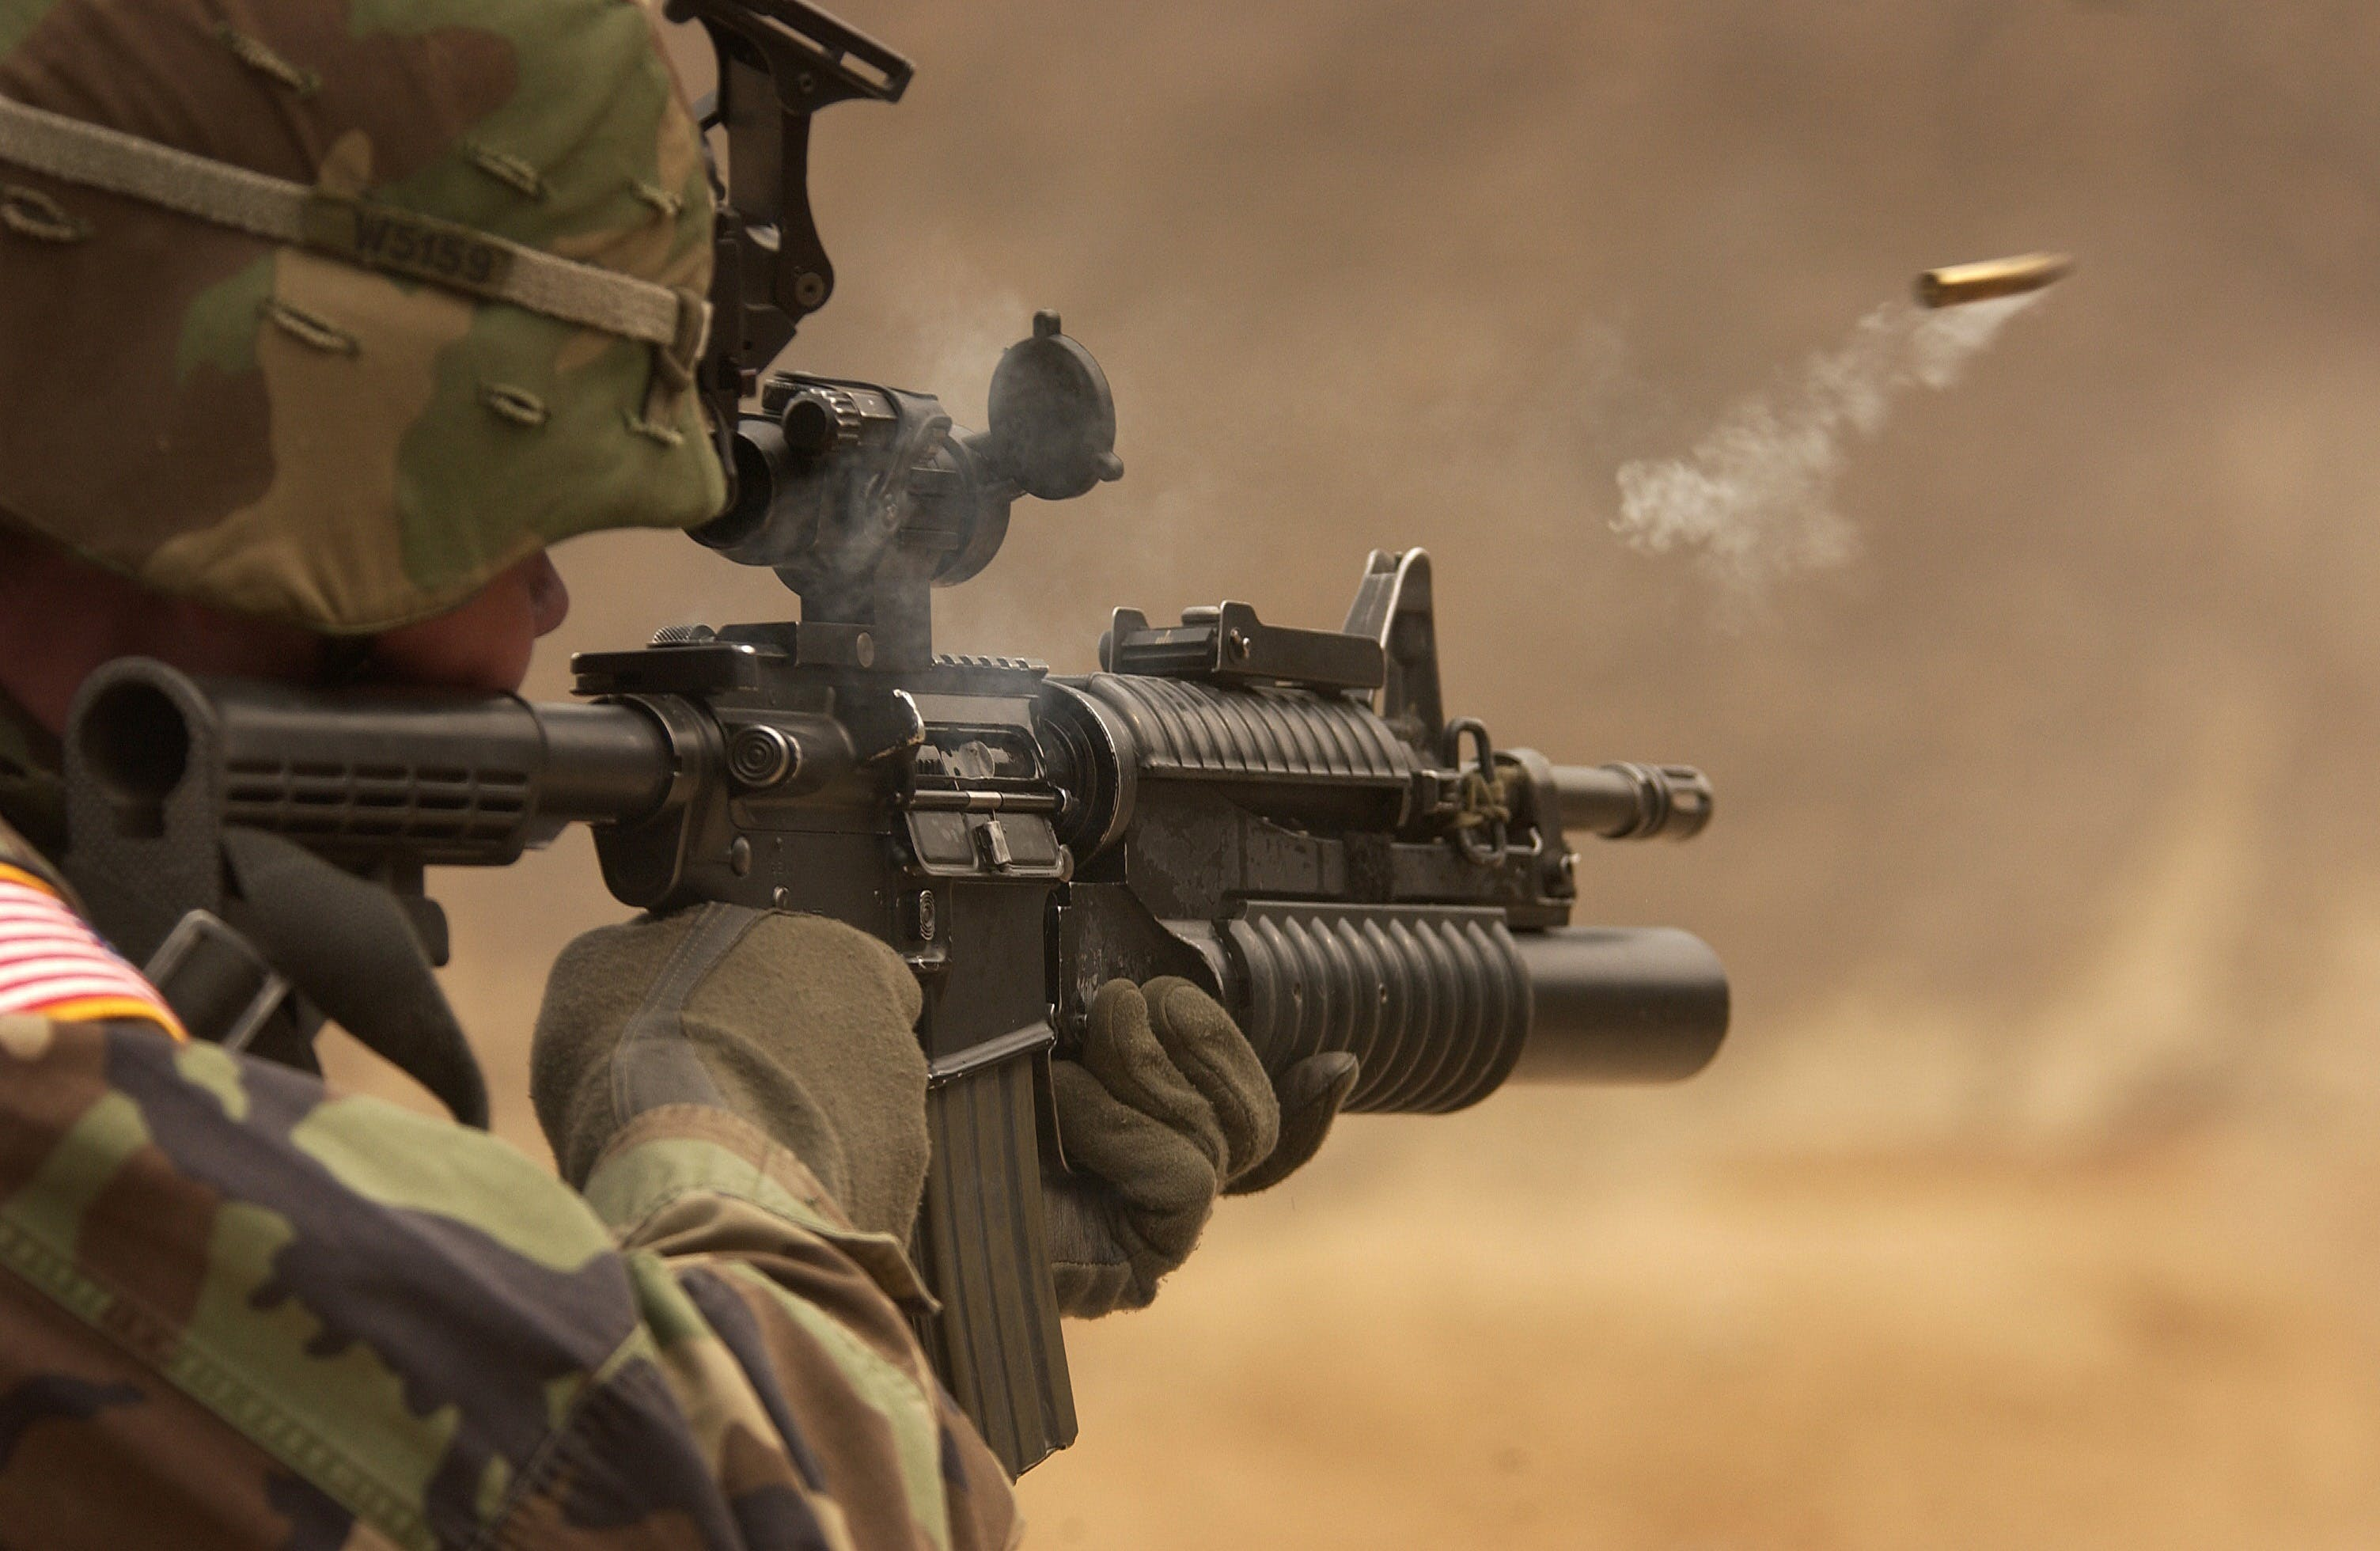 automatic weapon, bullet, camouflage